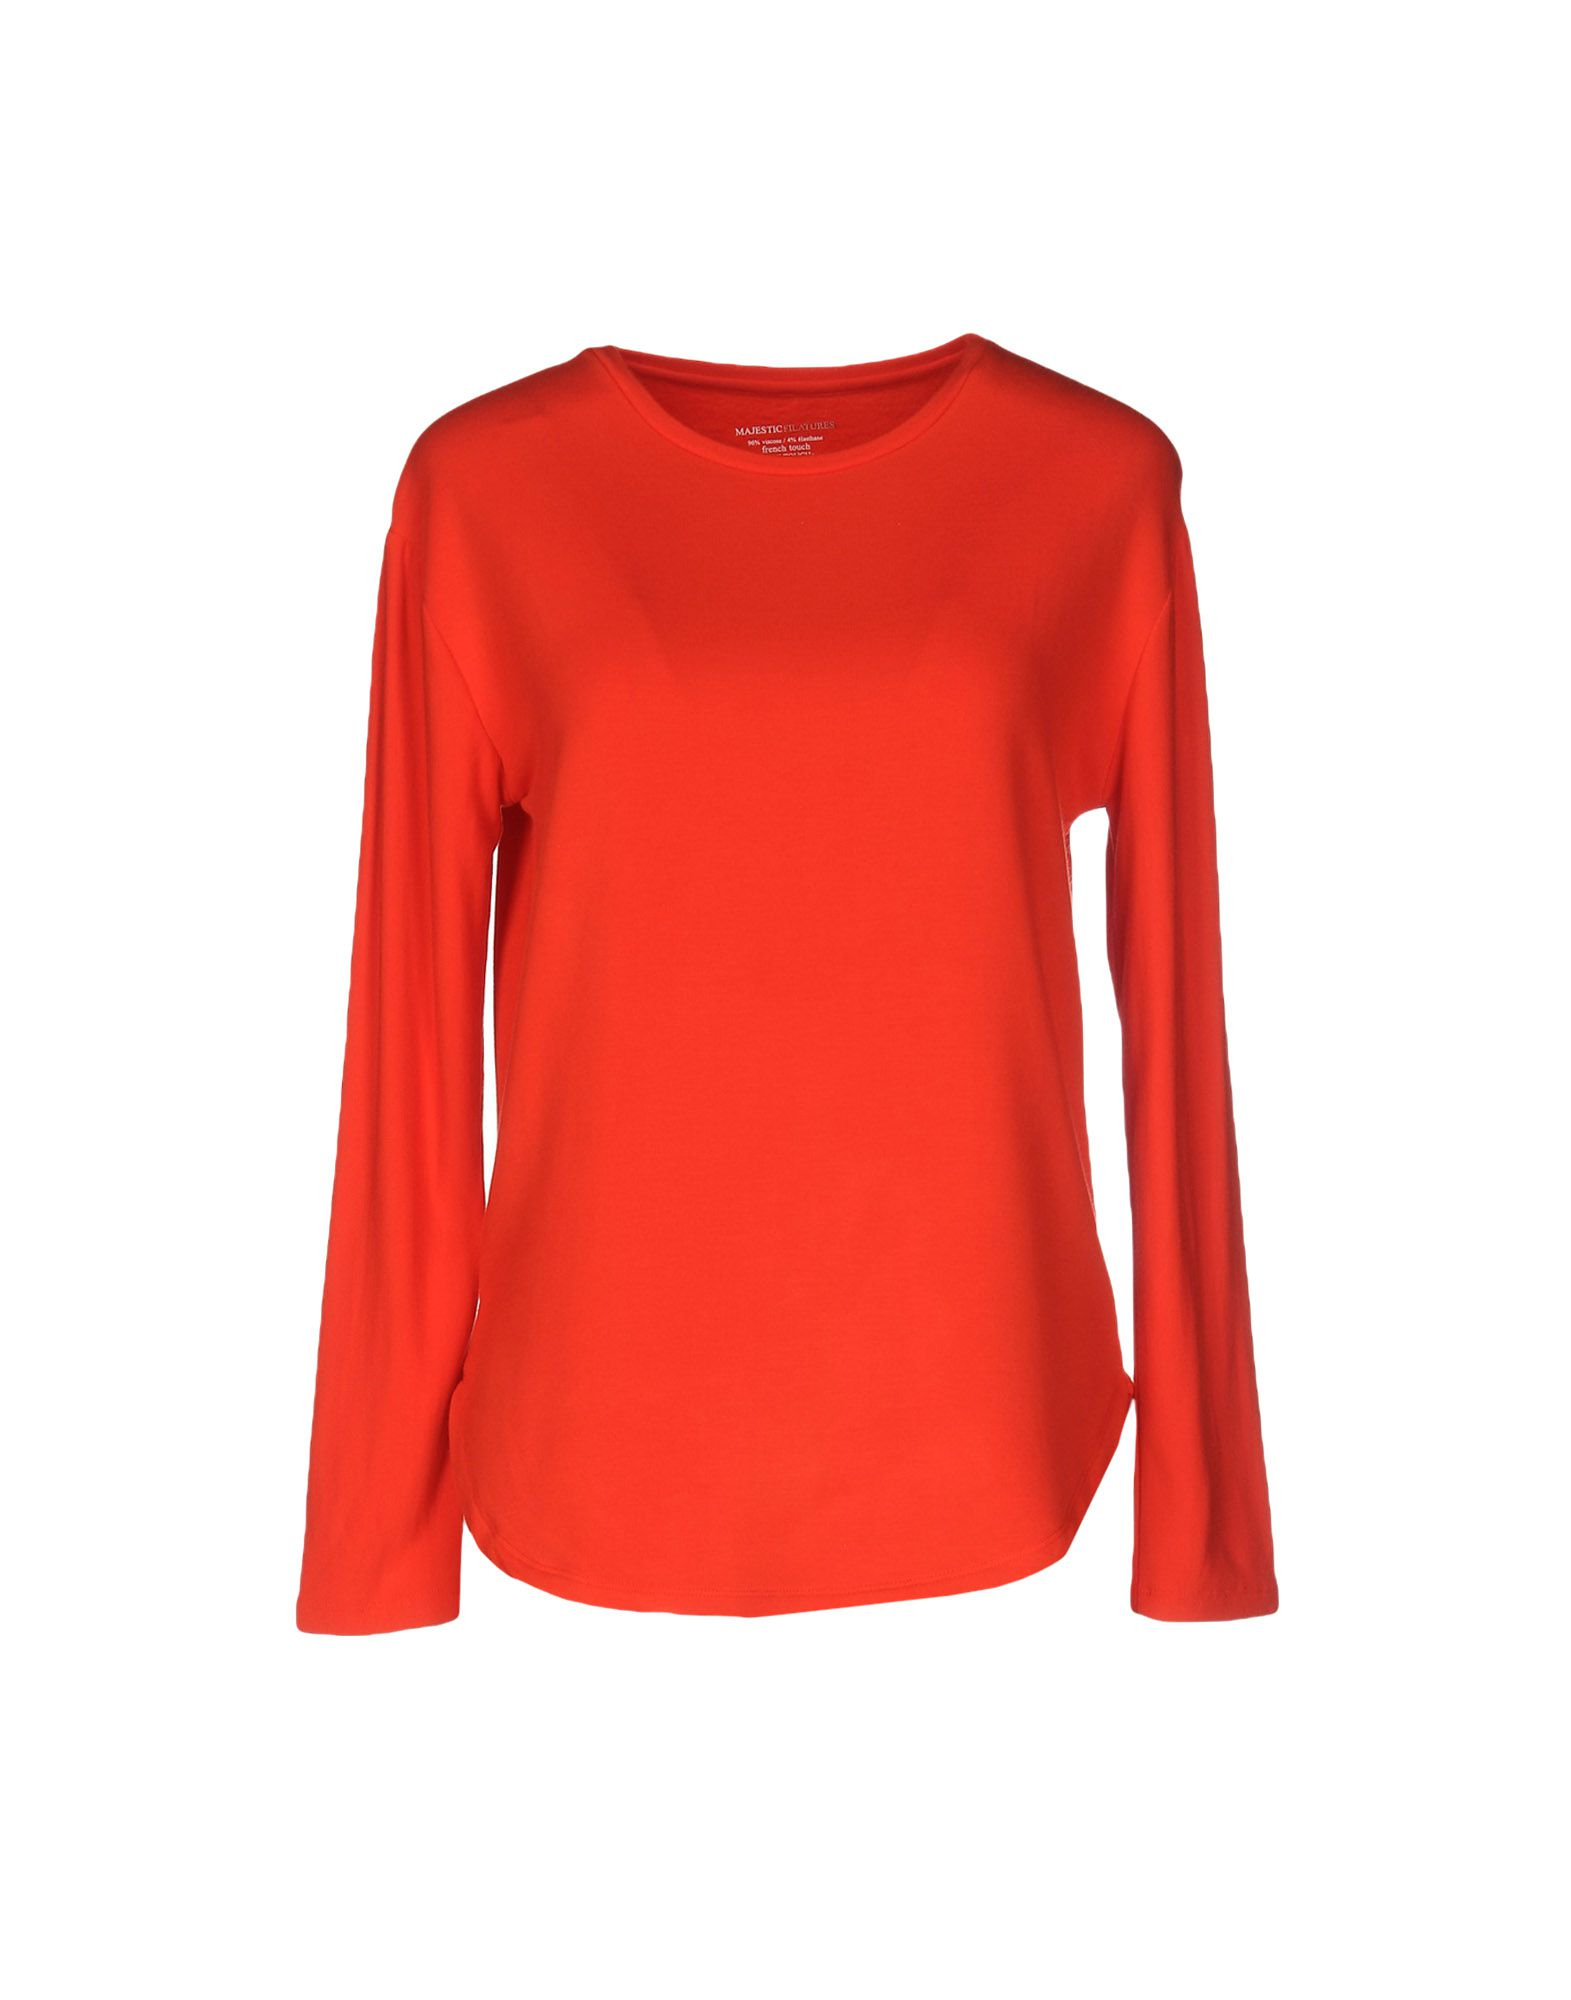 Majestic Filatures T Shirt In Red Lyst